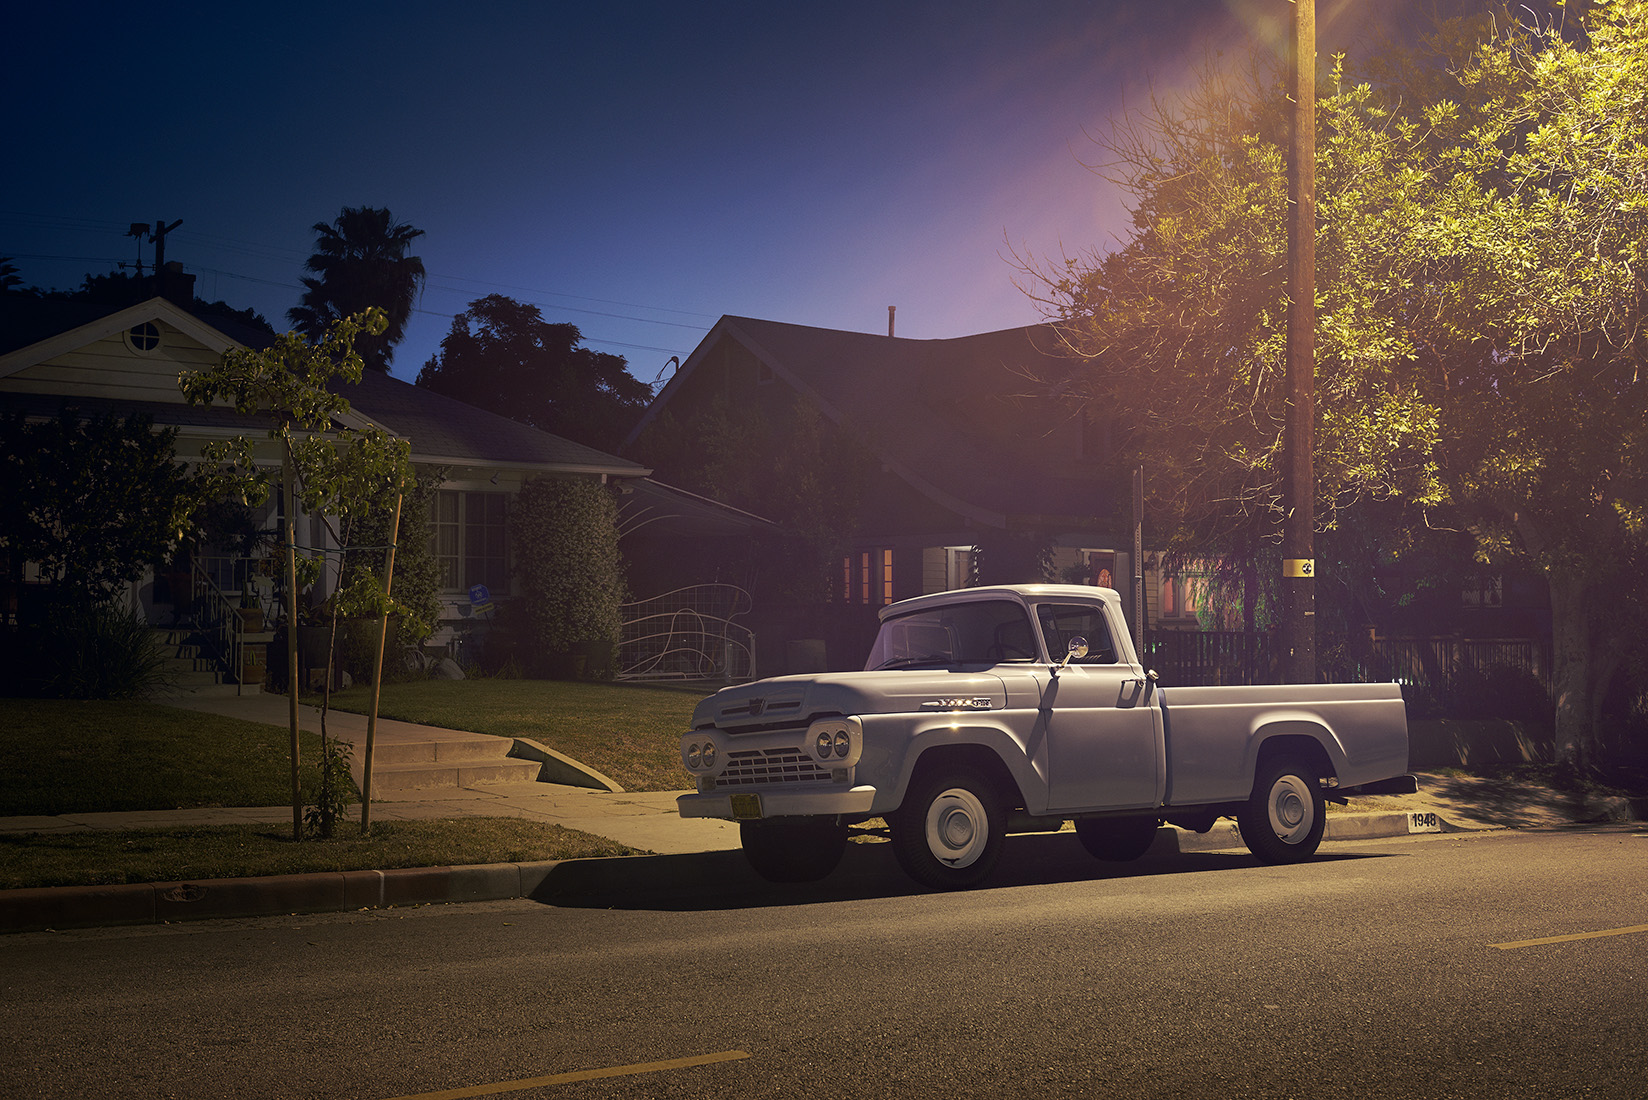 440297301050629597 in addition Portfolio together with JqRya furthermore HR in addition 1986 20Ford 20Pickup. on ford f250